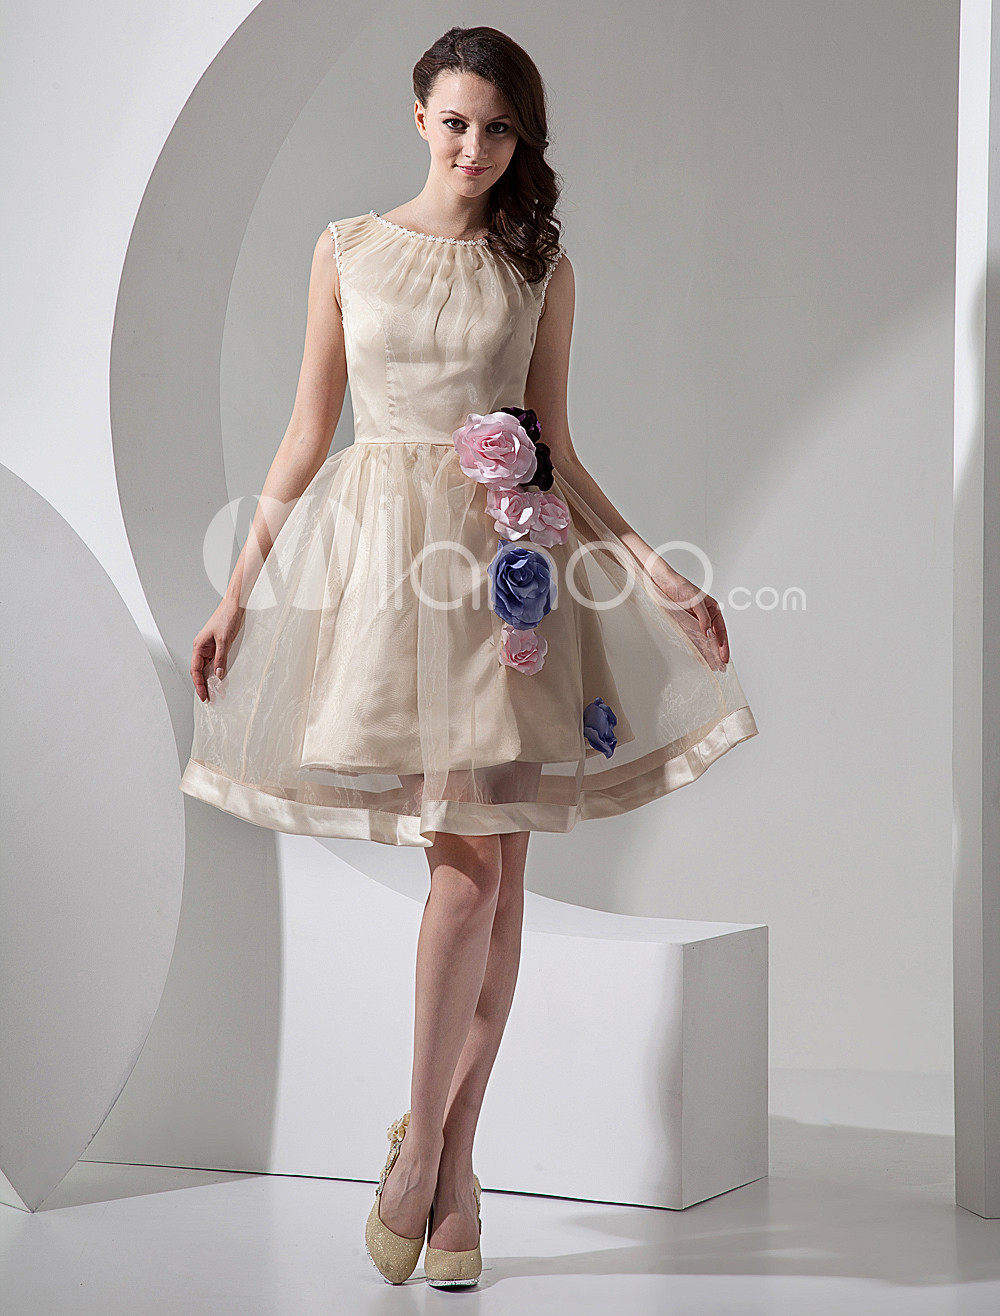 Short mini wedding dresses the fashionbrides for Good wedding dresses for short brides